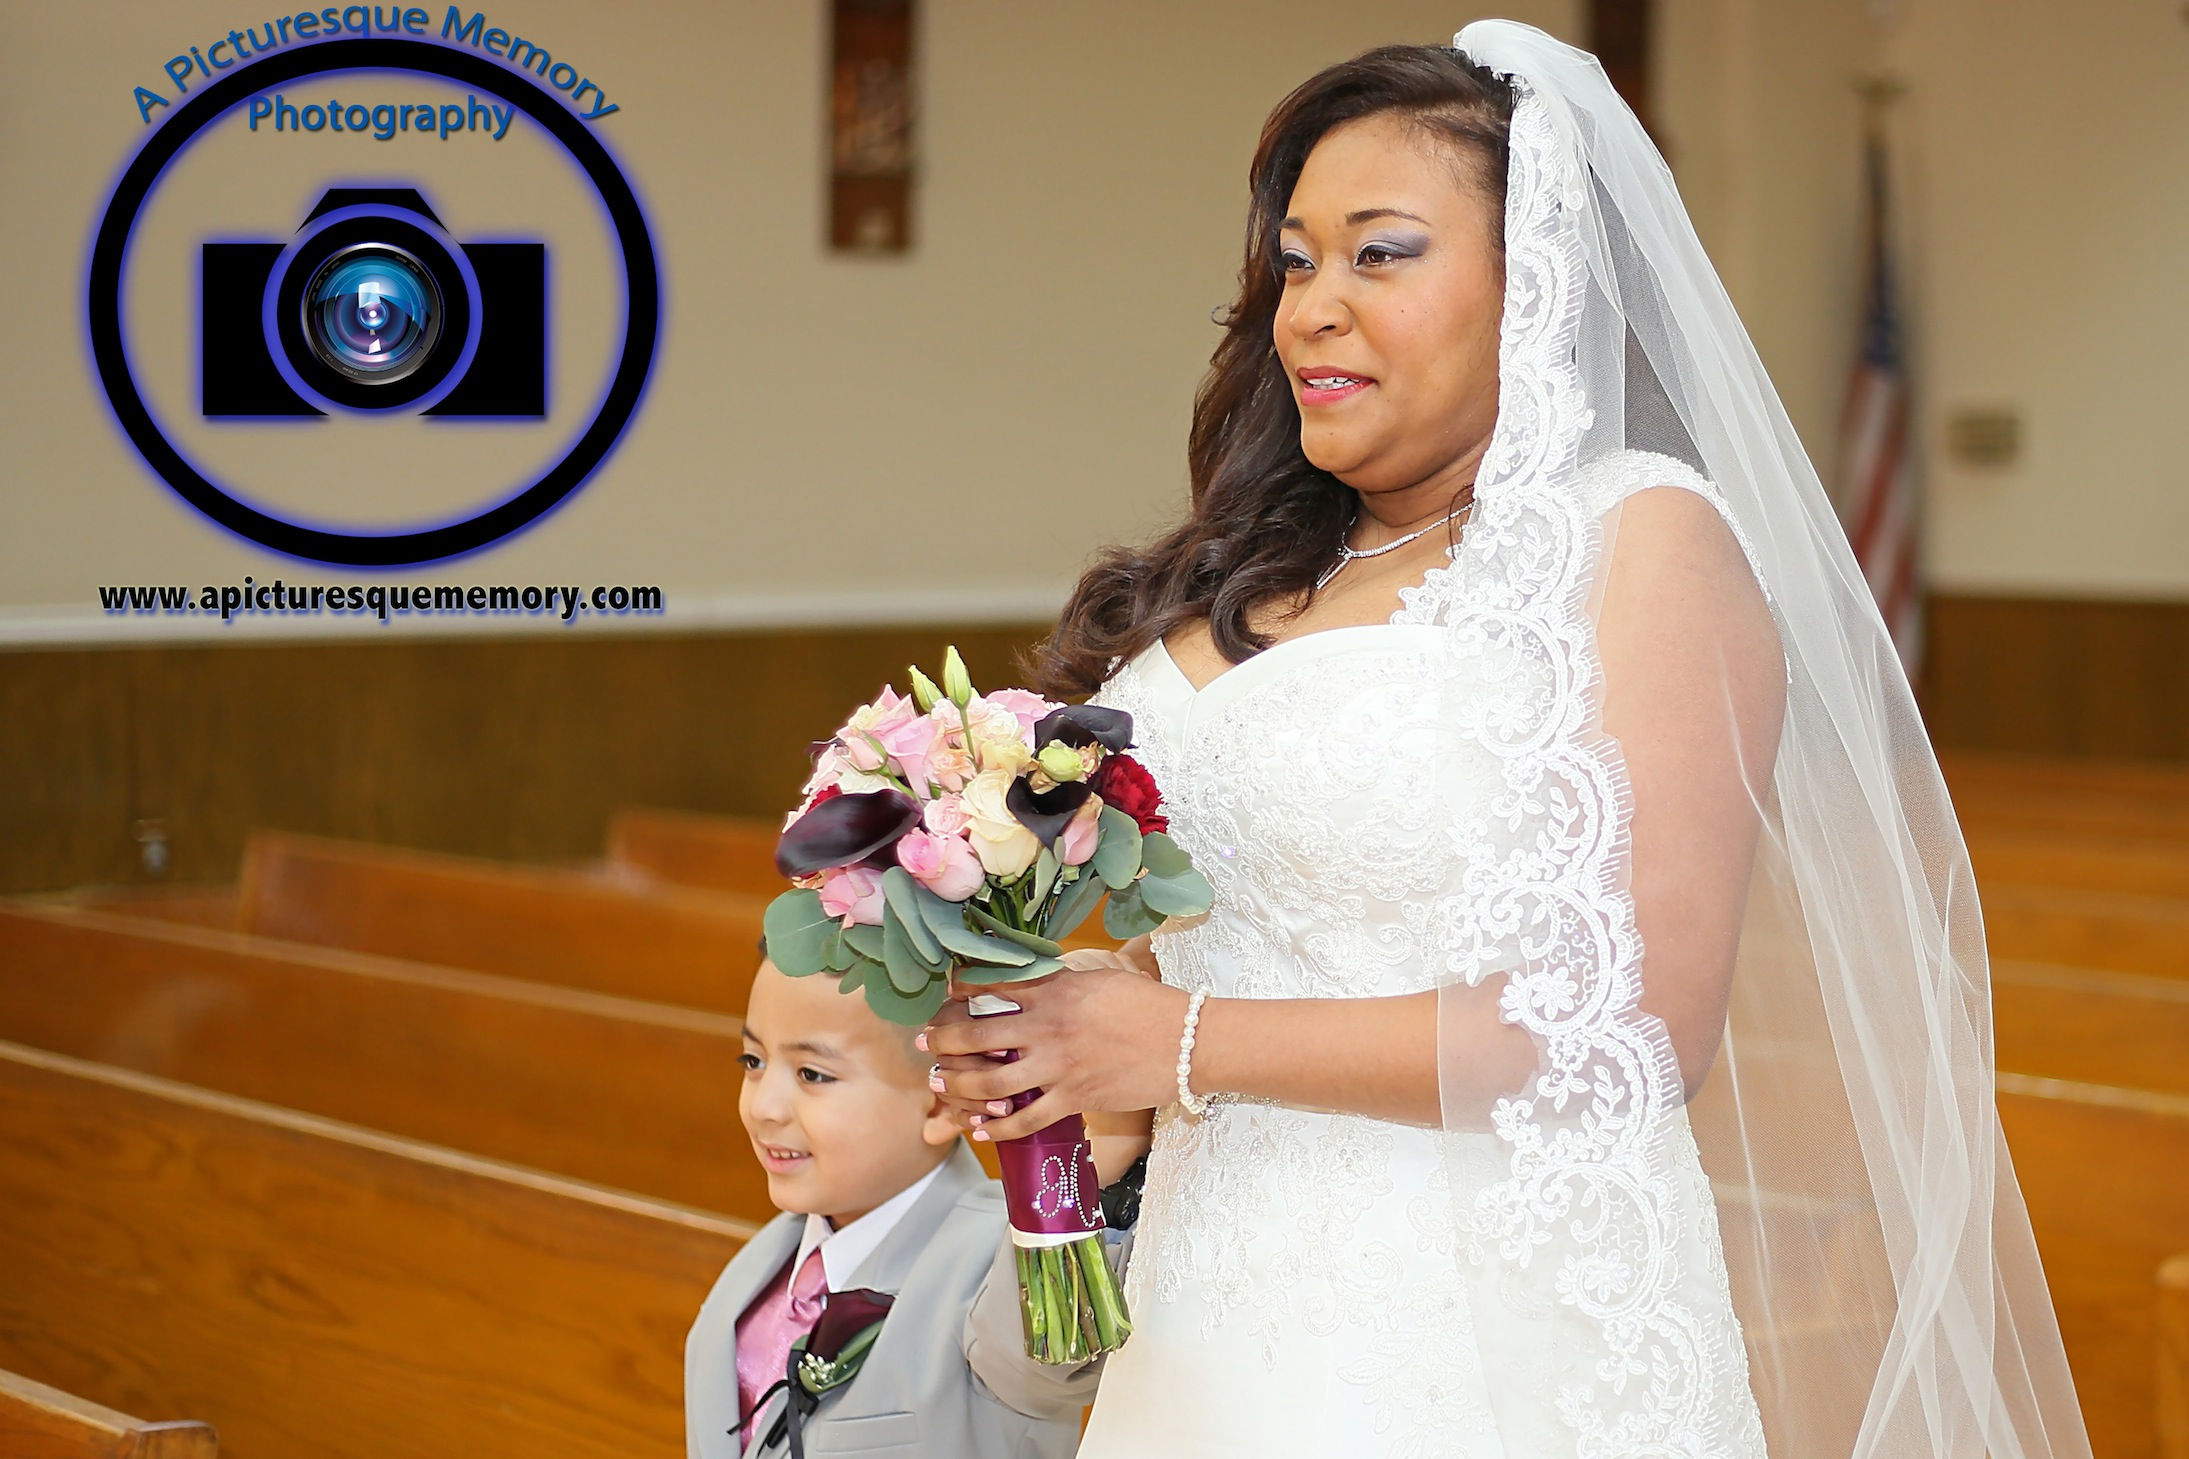 #njwedding, #njweddingphotography, #newbrunswickweddingphotographer#weddingphotos, #apicturesquememoryphotography, #ourladyofmountcarmelweddingphotographer, #weddingceremony, #bride, #bridesbouquet, #bridewalkingdownaisle